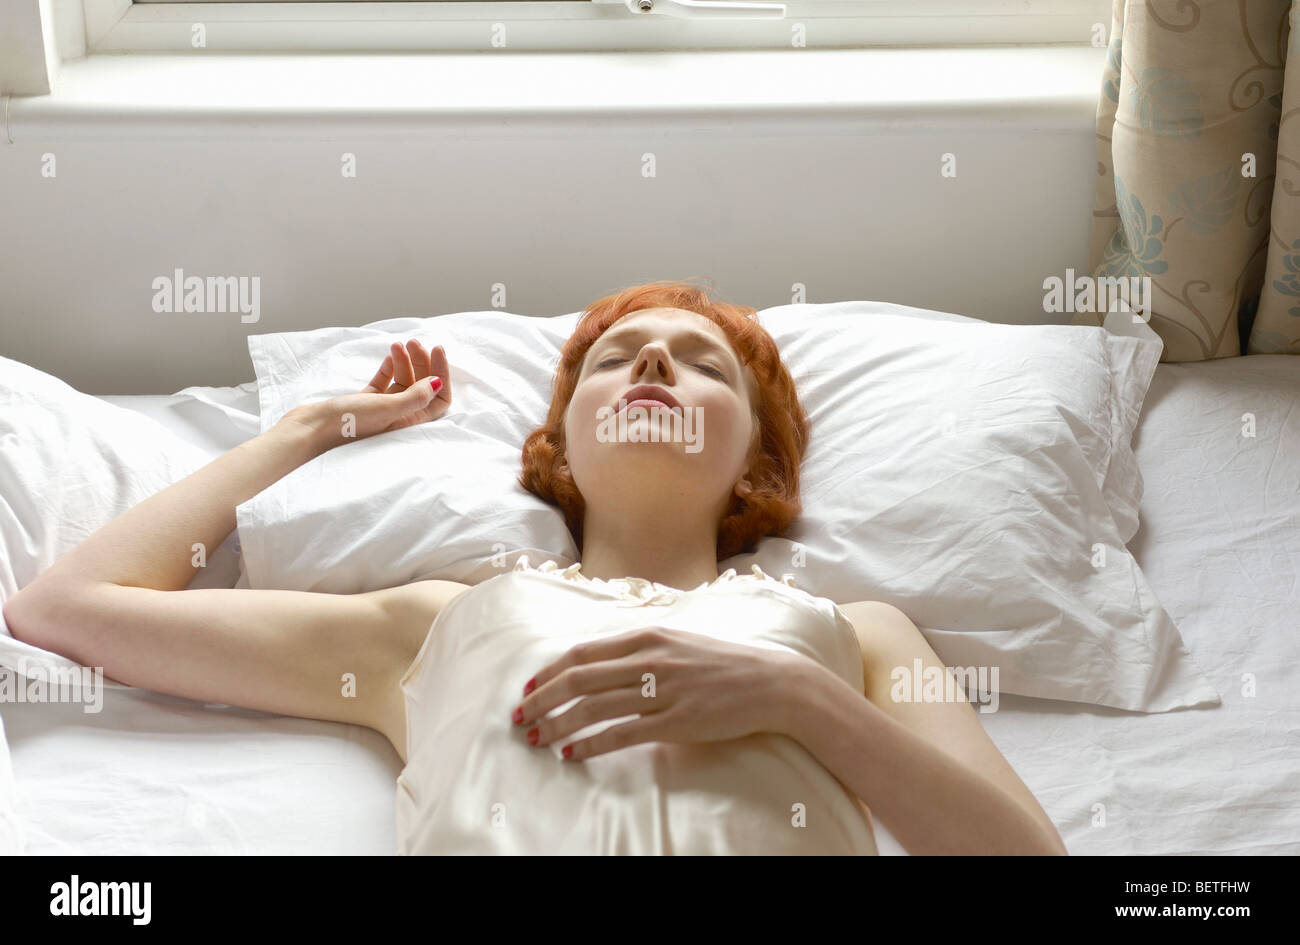 Woman asleep on bed Photo Stock